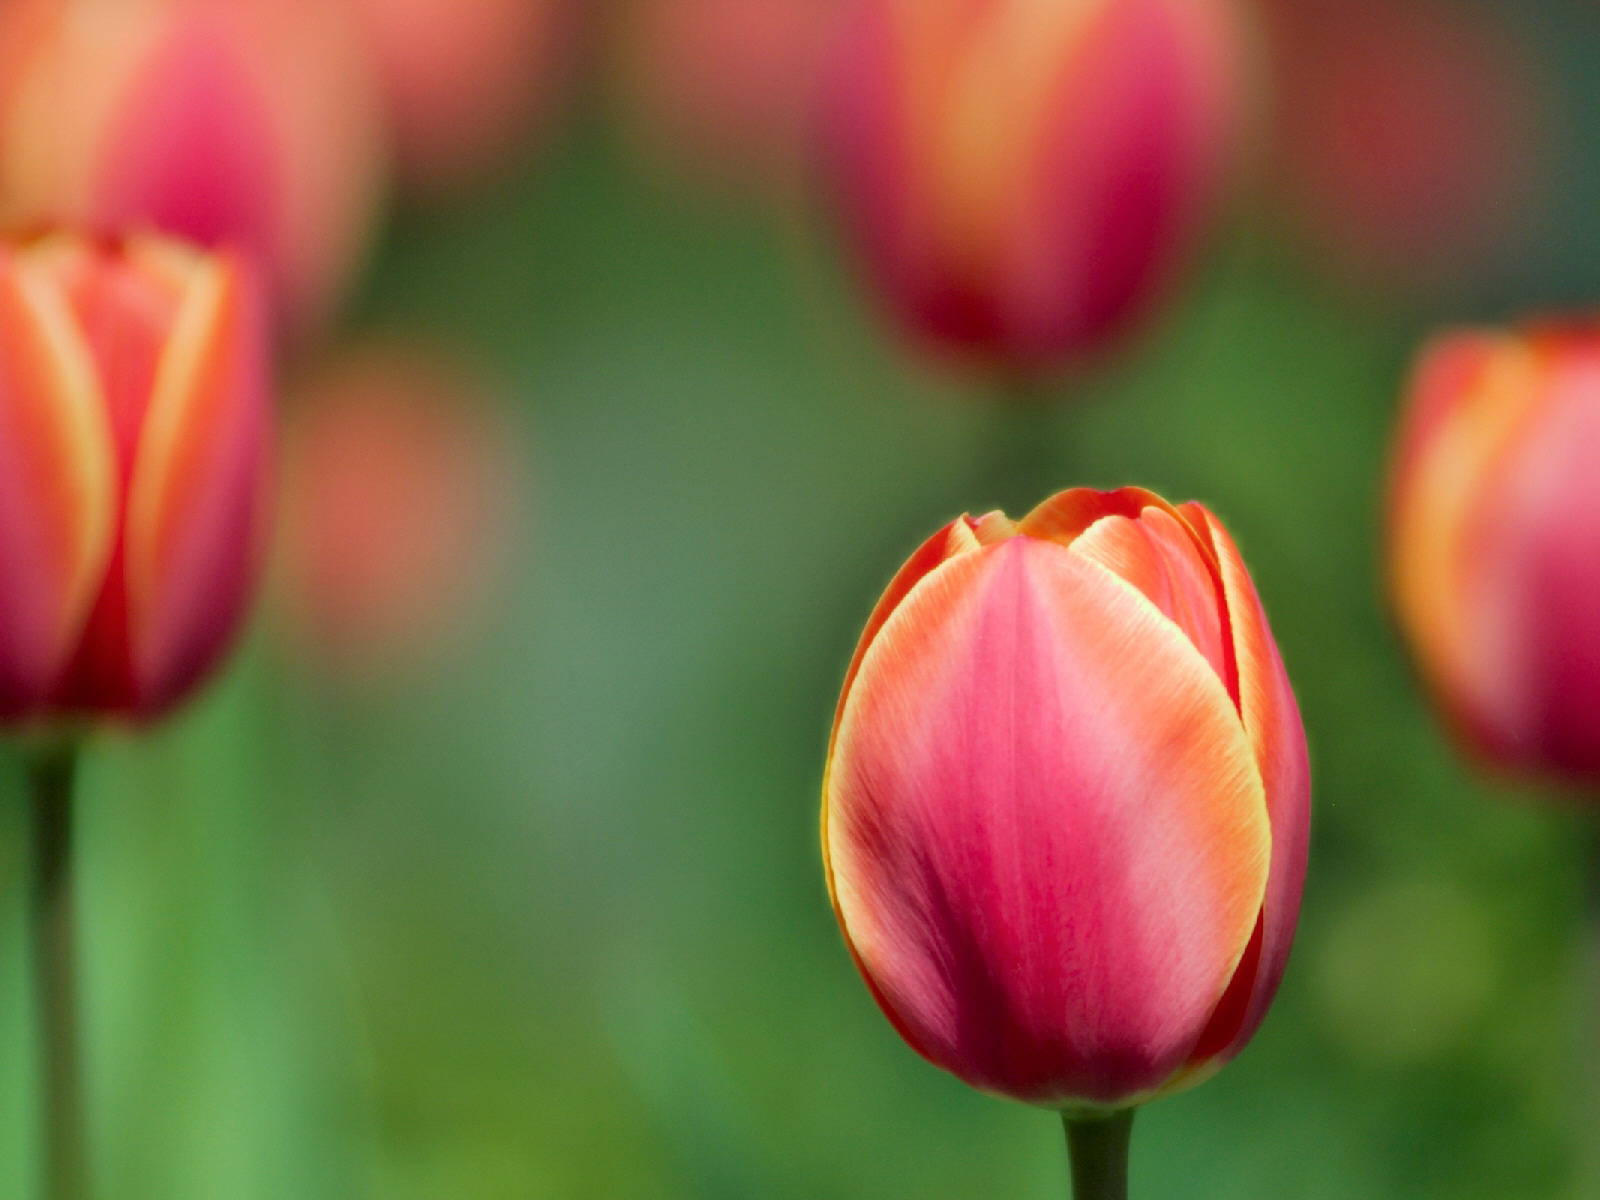 Wallpaper: Tulip Wallpapers